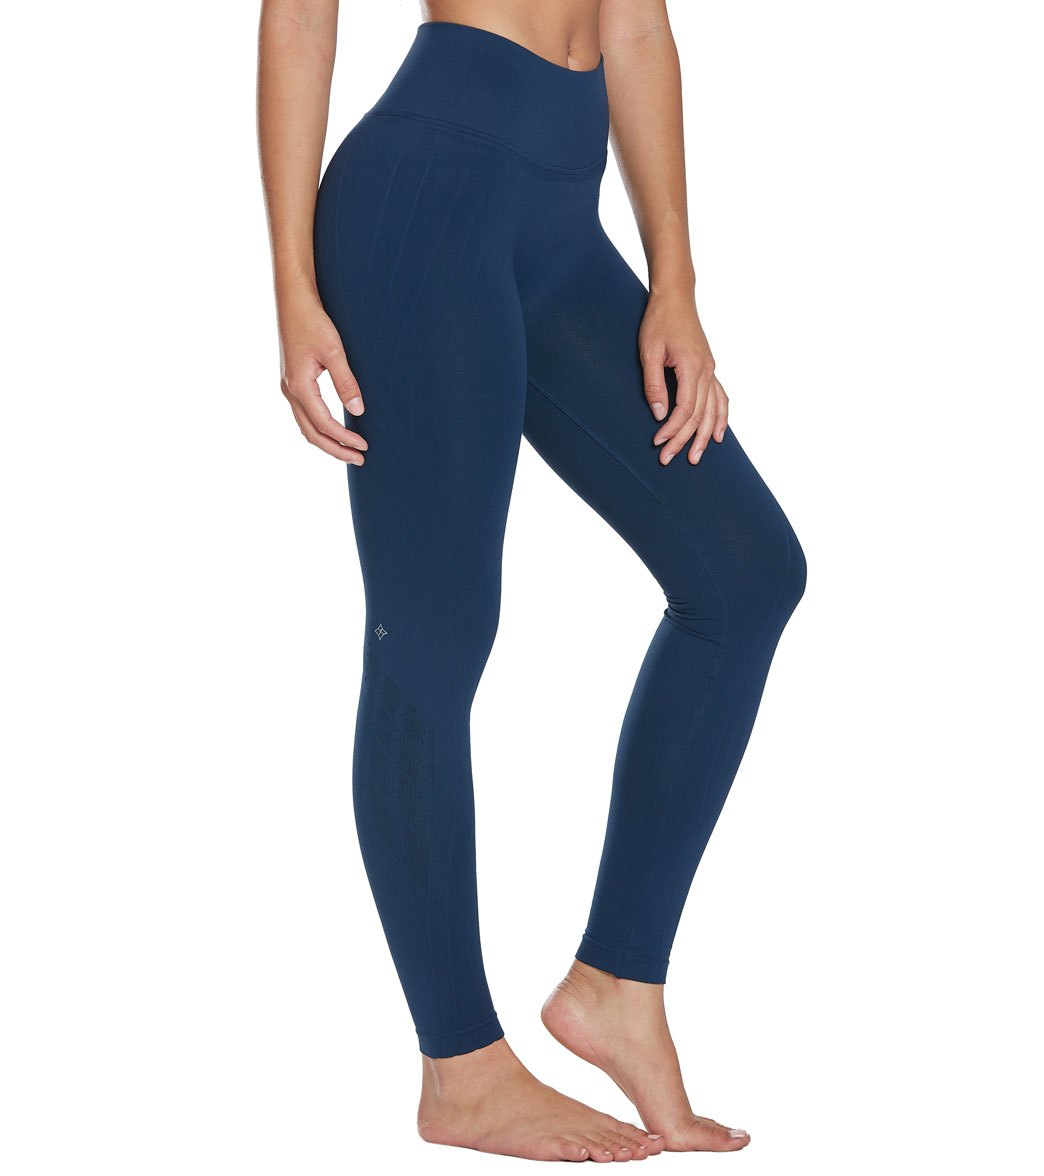 NUX Mesa Seamless Yoga Leggings - Navy Blue Spandex